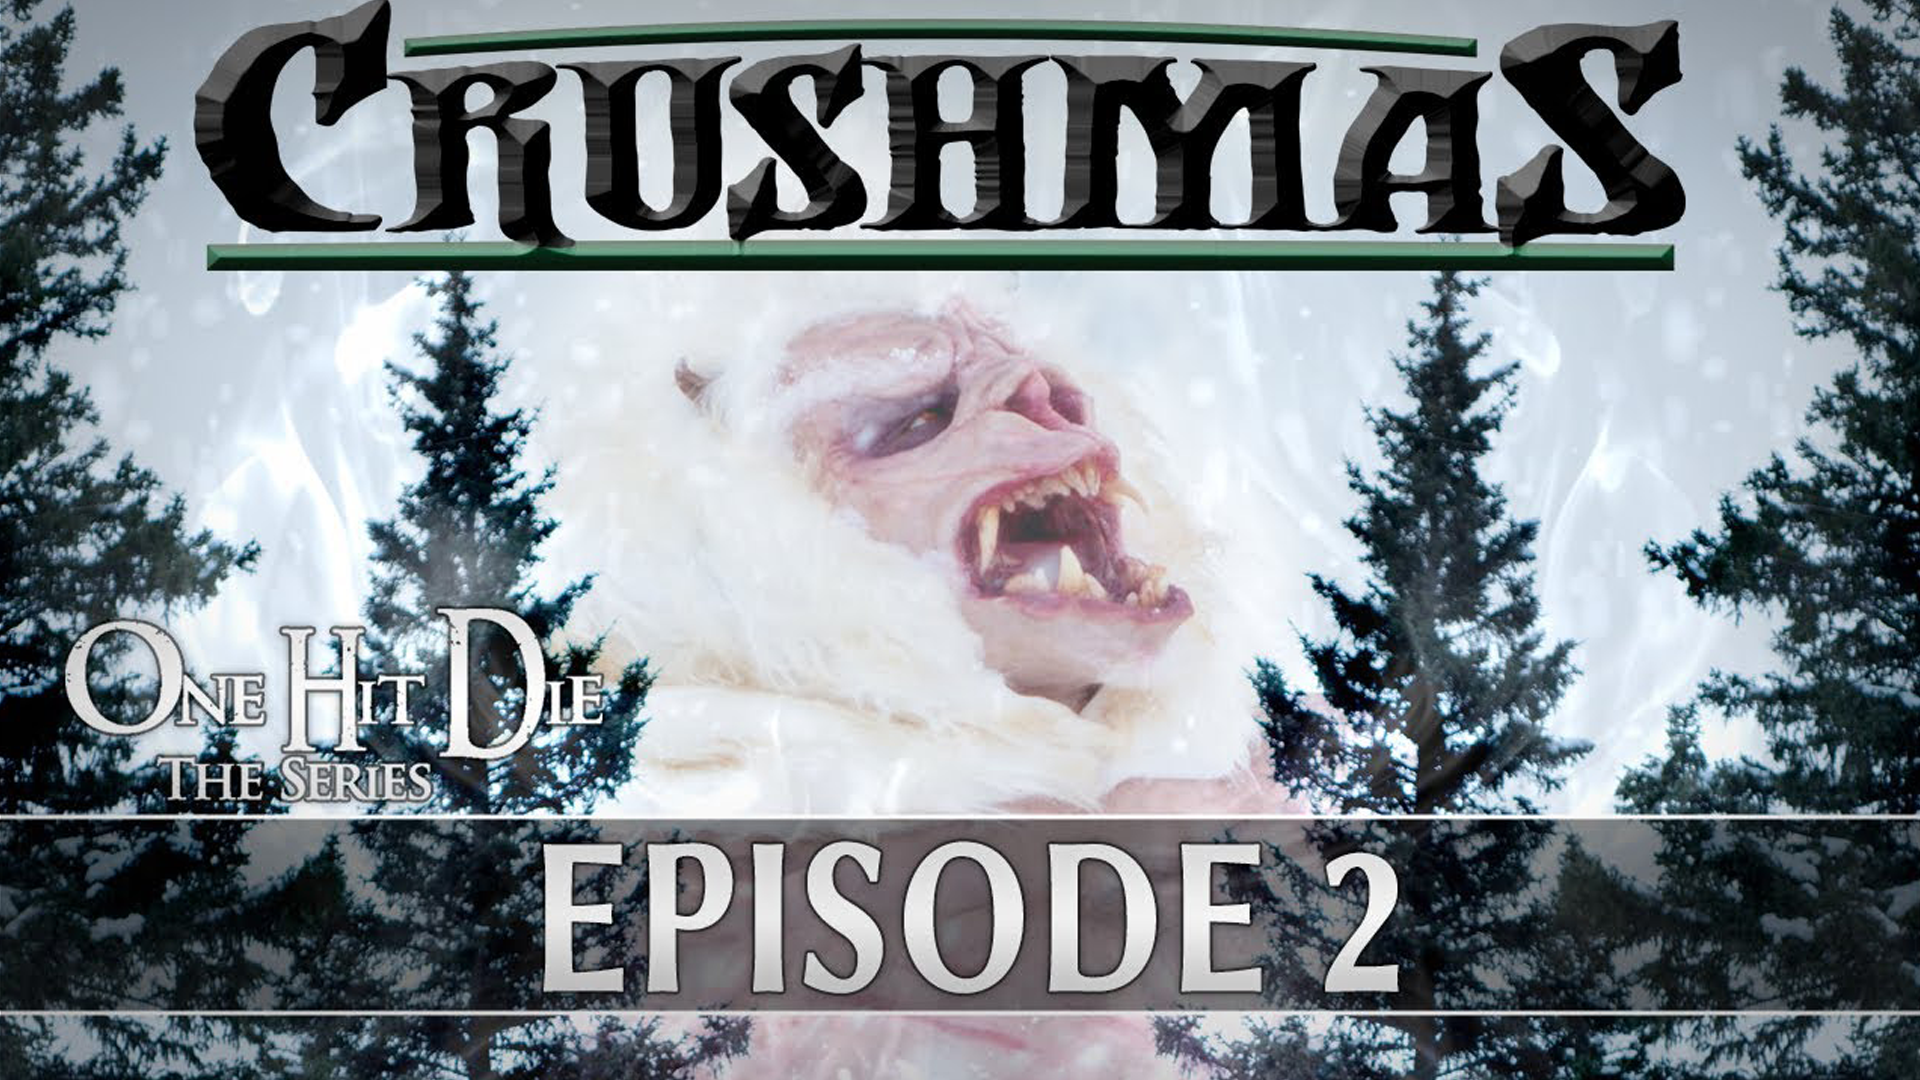 One Hit Die Crushmas Episode 2